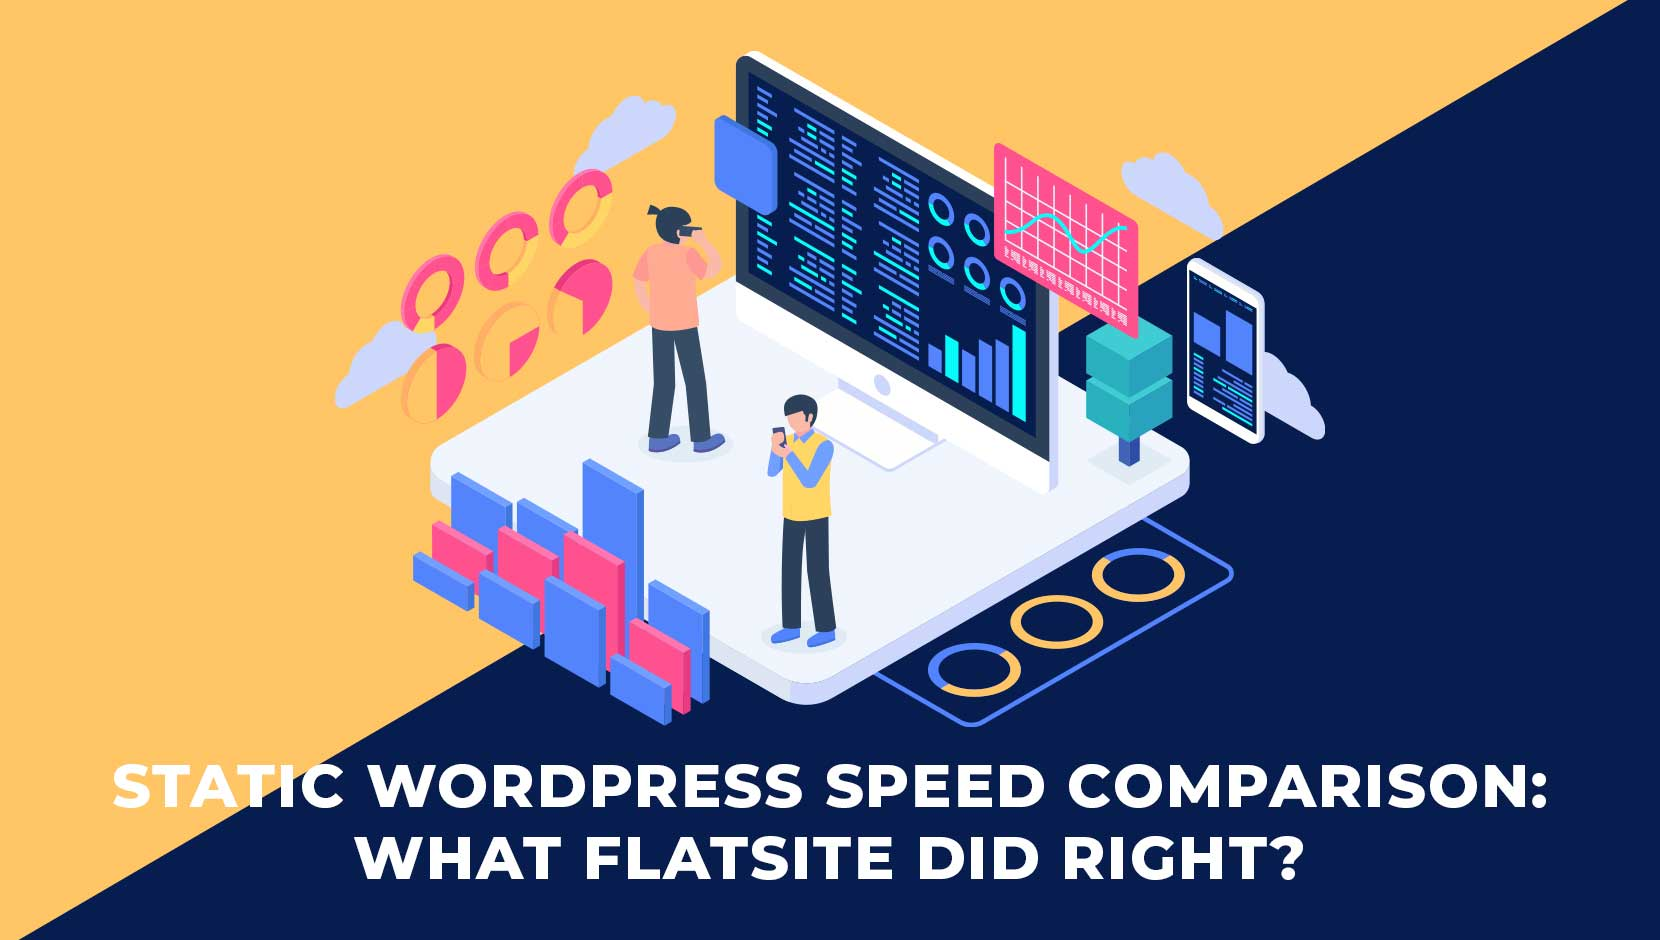 FLATsite Tops Static WordPress Speed Comparison